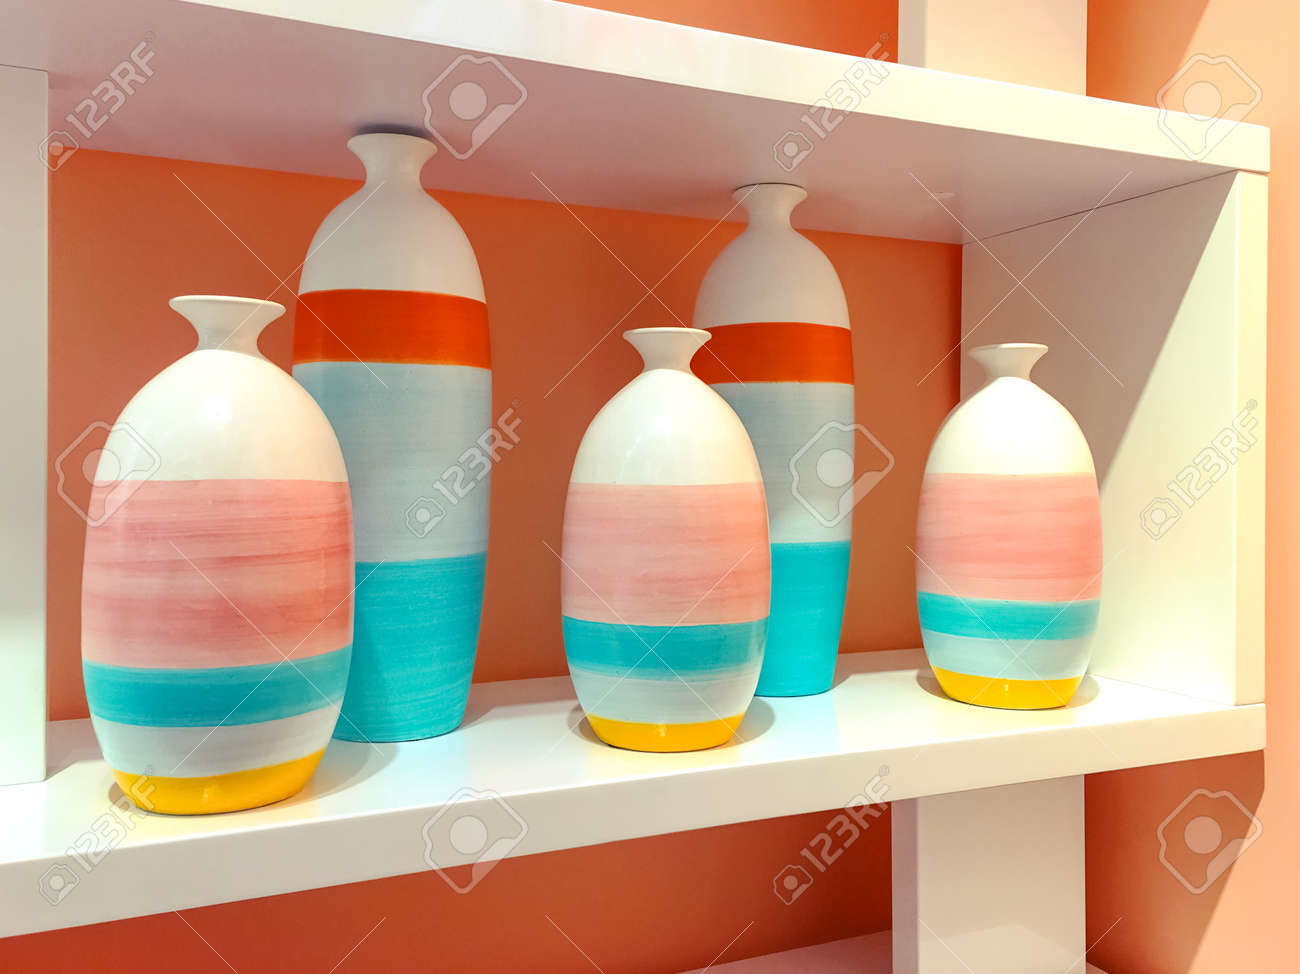 brightly painted furniture. Brightly Painted Ceramic Vases On A Shelf. Home Decor. Stock Photo - 77496821 Furniture T